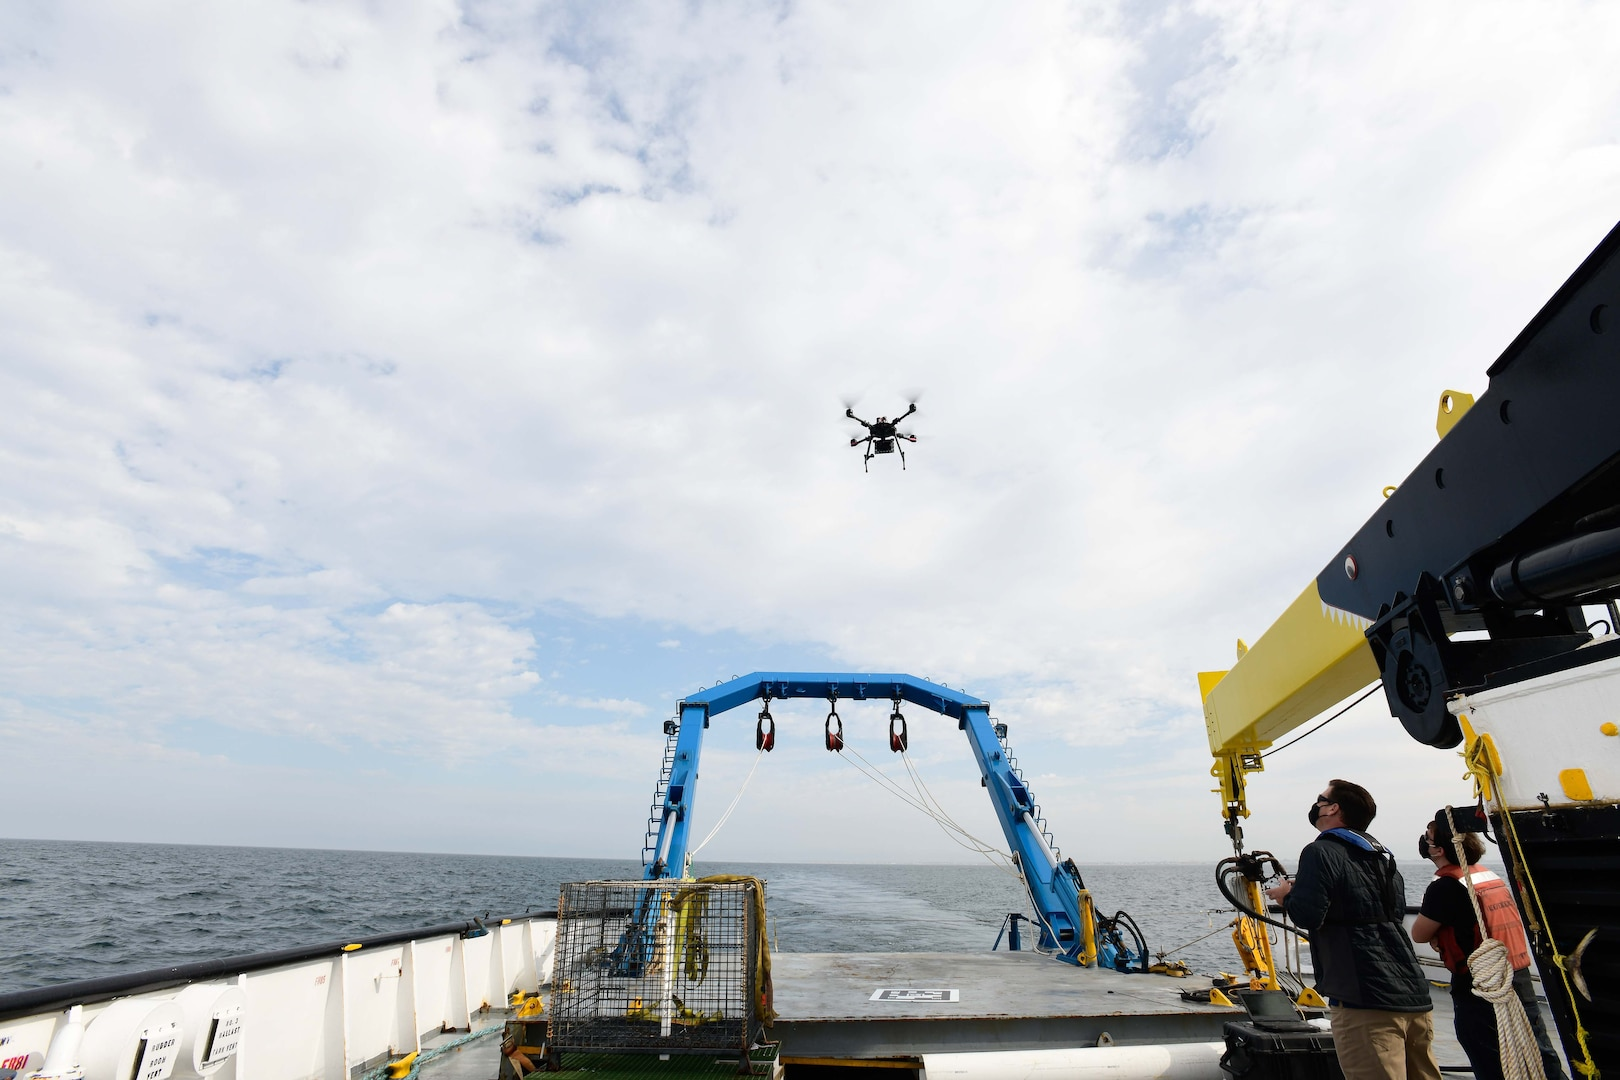 Alan Jaeger, Naval Surface Warfare Center, Port Hueneme Division's Office Of Technology (00T) research and technology manager, and Ian Wilson, 00T's cybersecurity researcher, test out the capabilities of a quadcopter drone at the stern of a ship on Friday, Sept. 18.